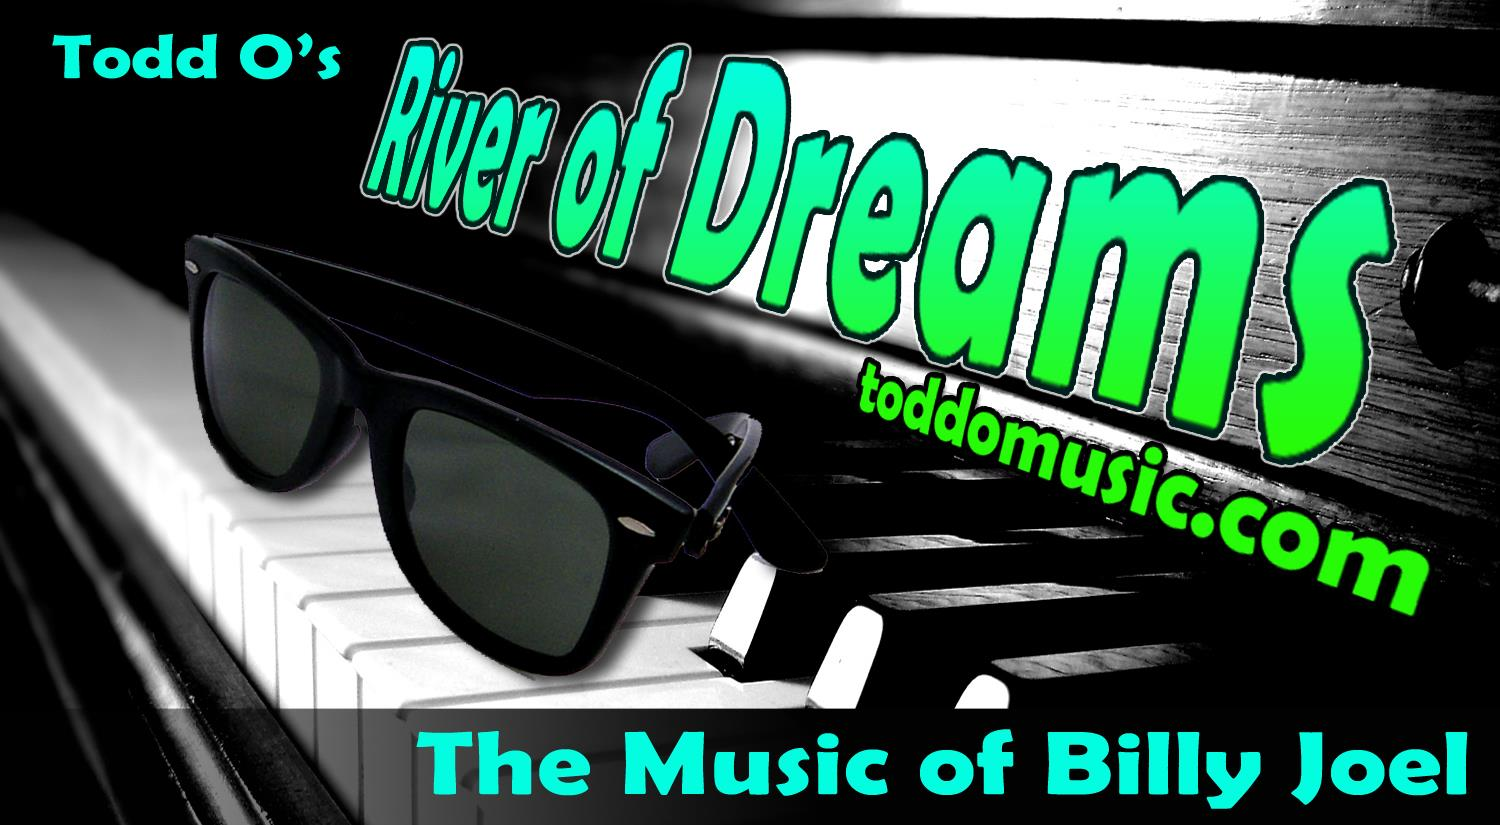 Todd O's River Of Dreams